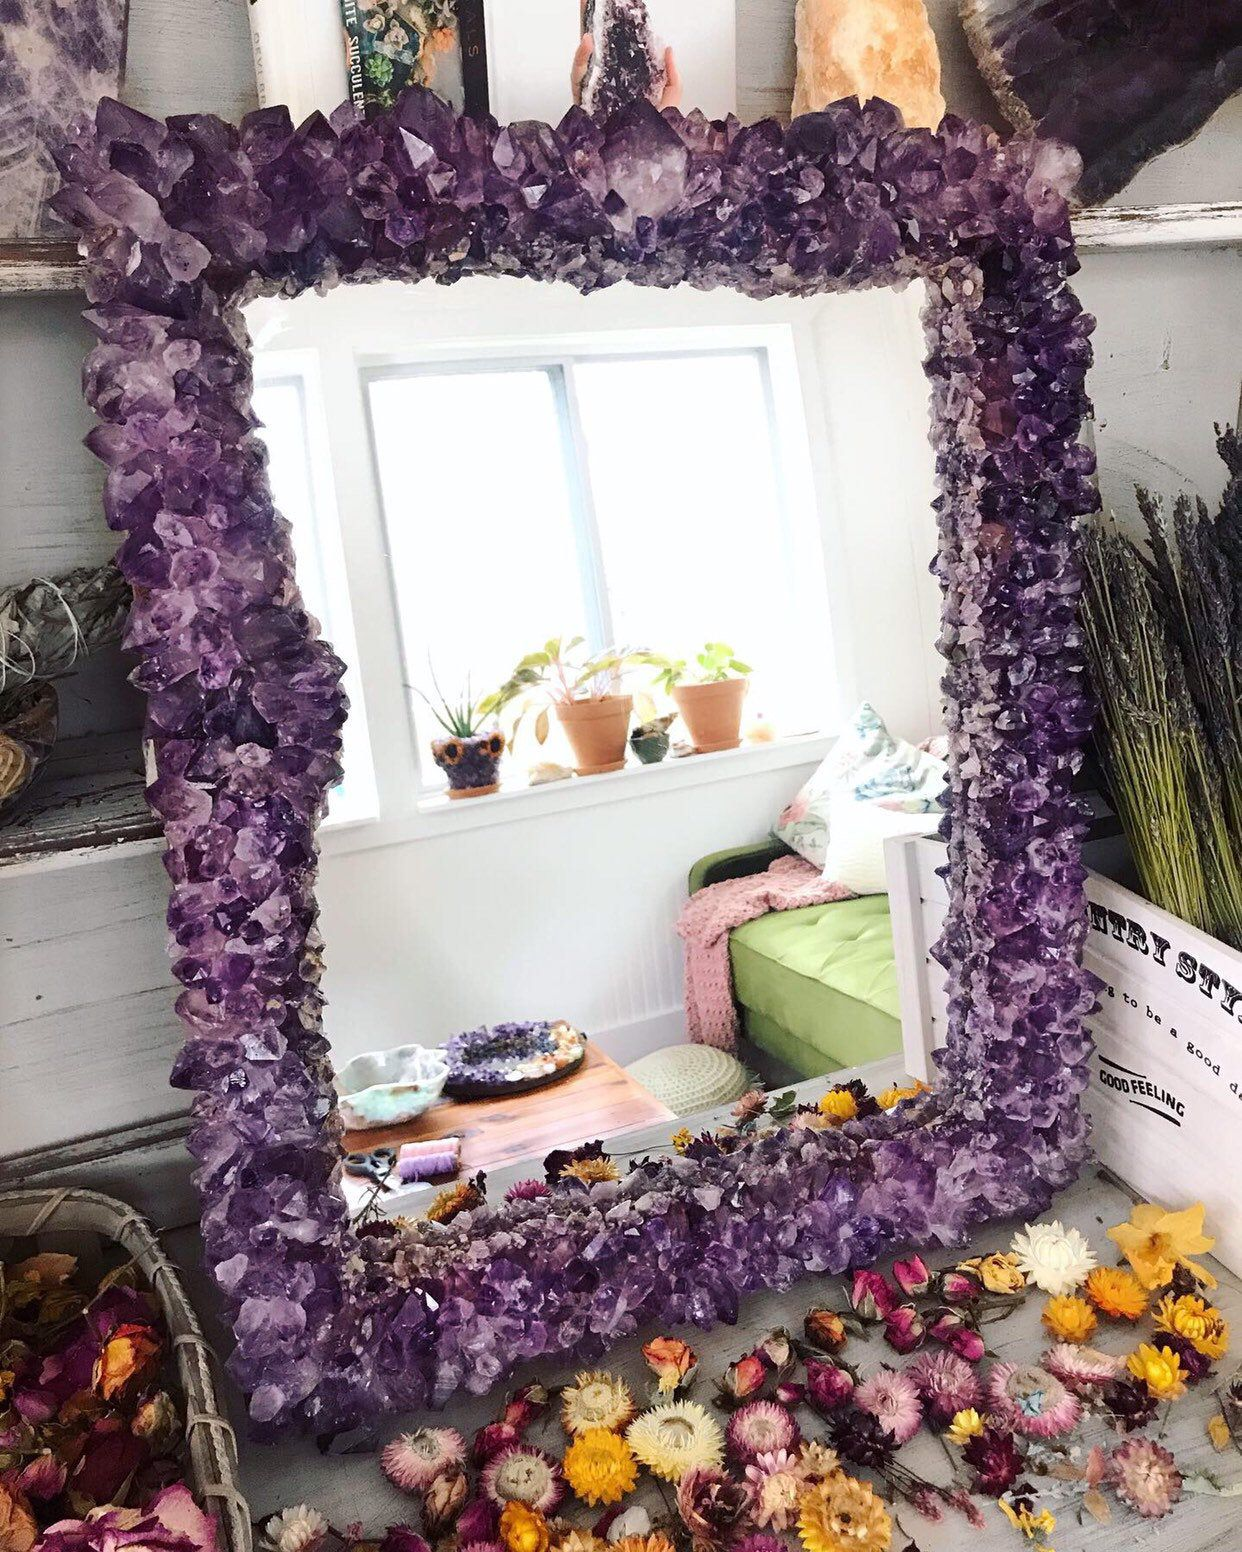 AMETHYST Crystal Mirror // MADE To ORDER 2-4 months lead time | Etsy